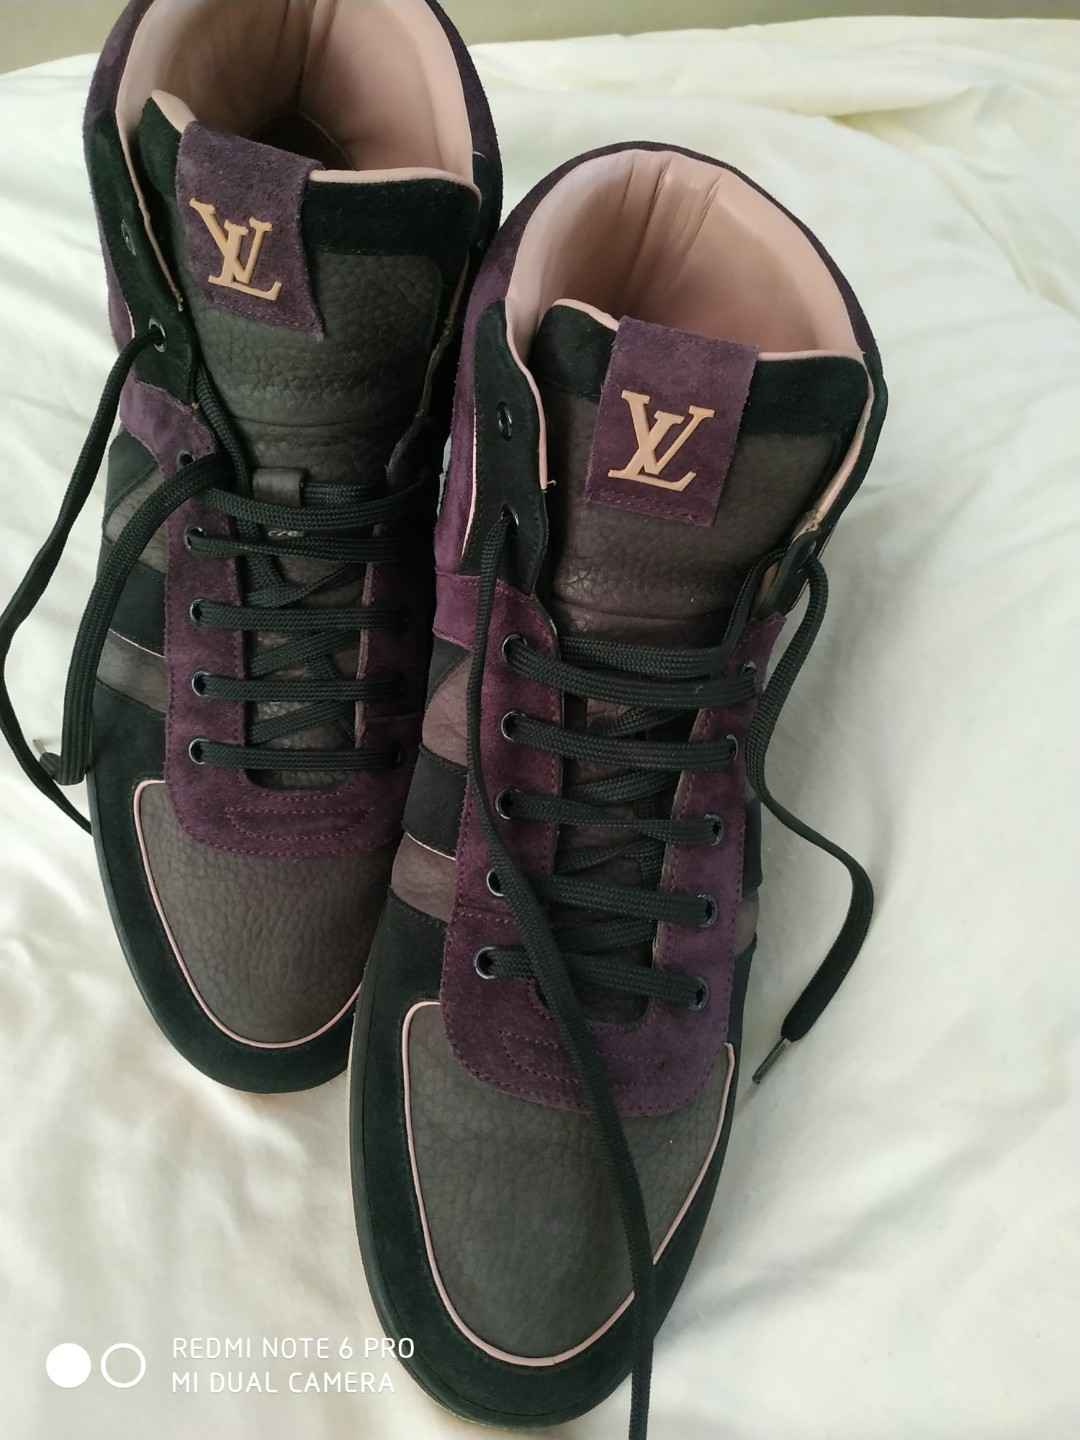 ccb927799a75 Louis Vuitton shoes